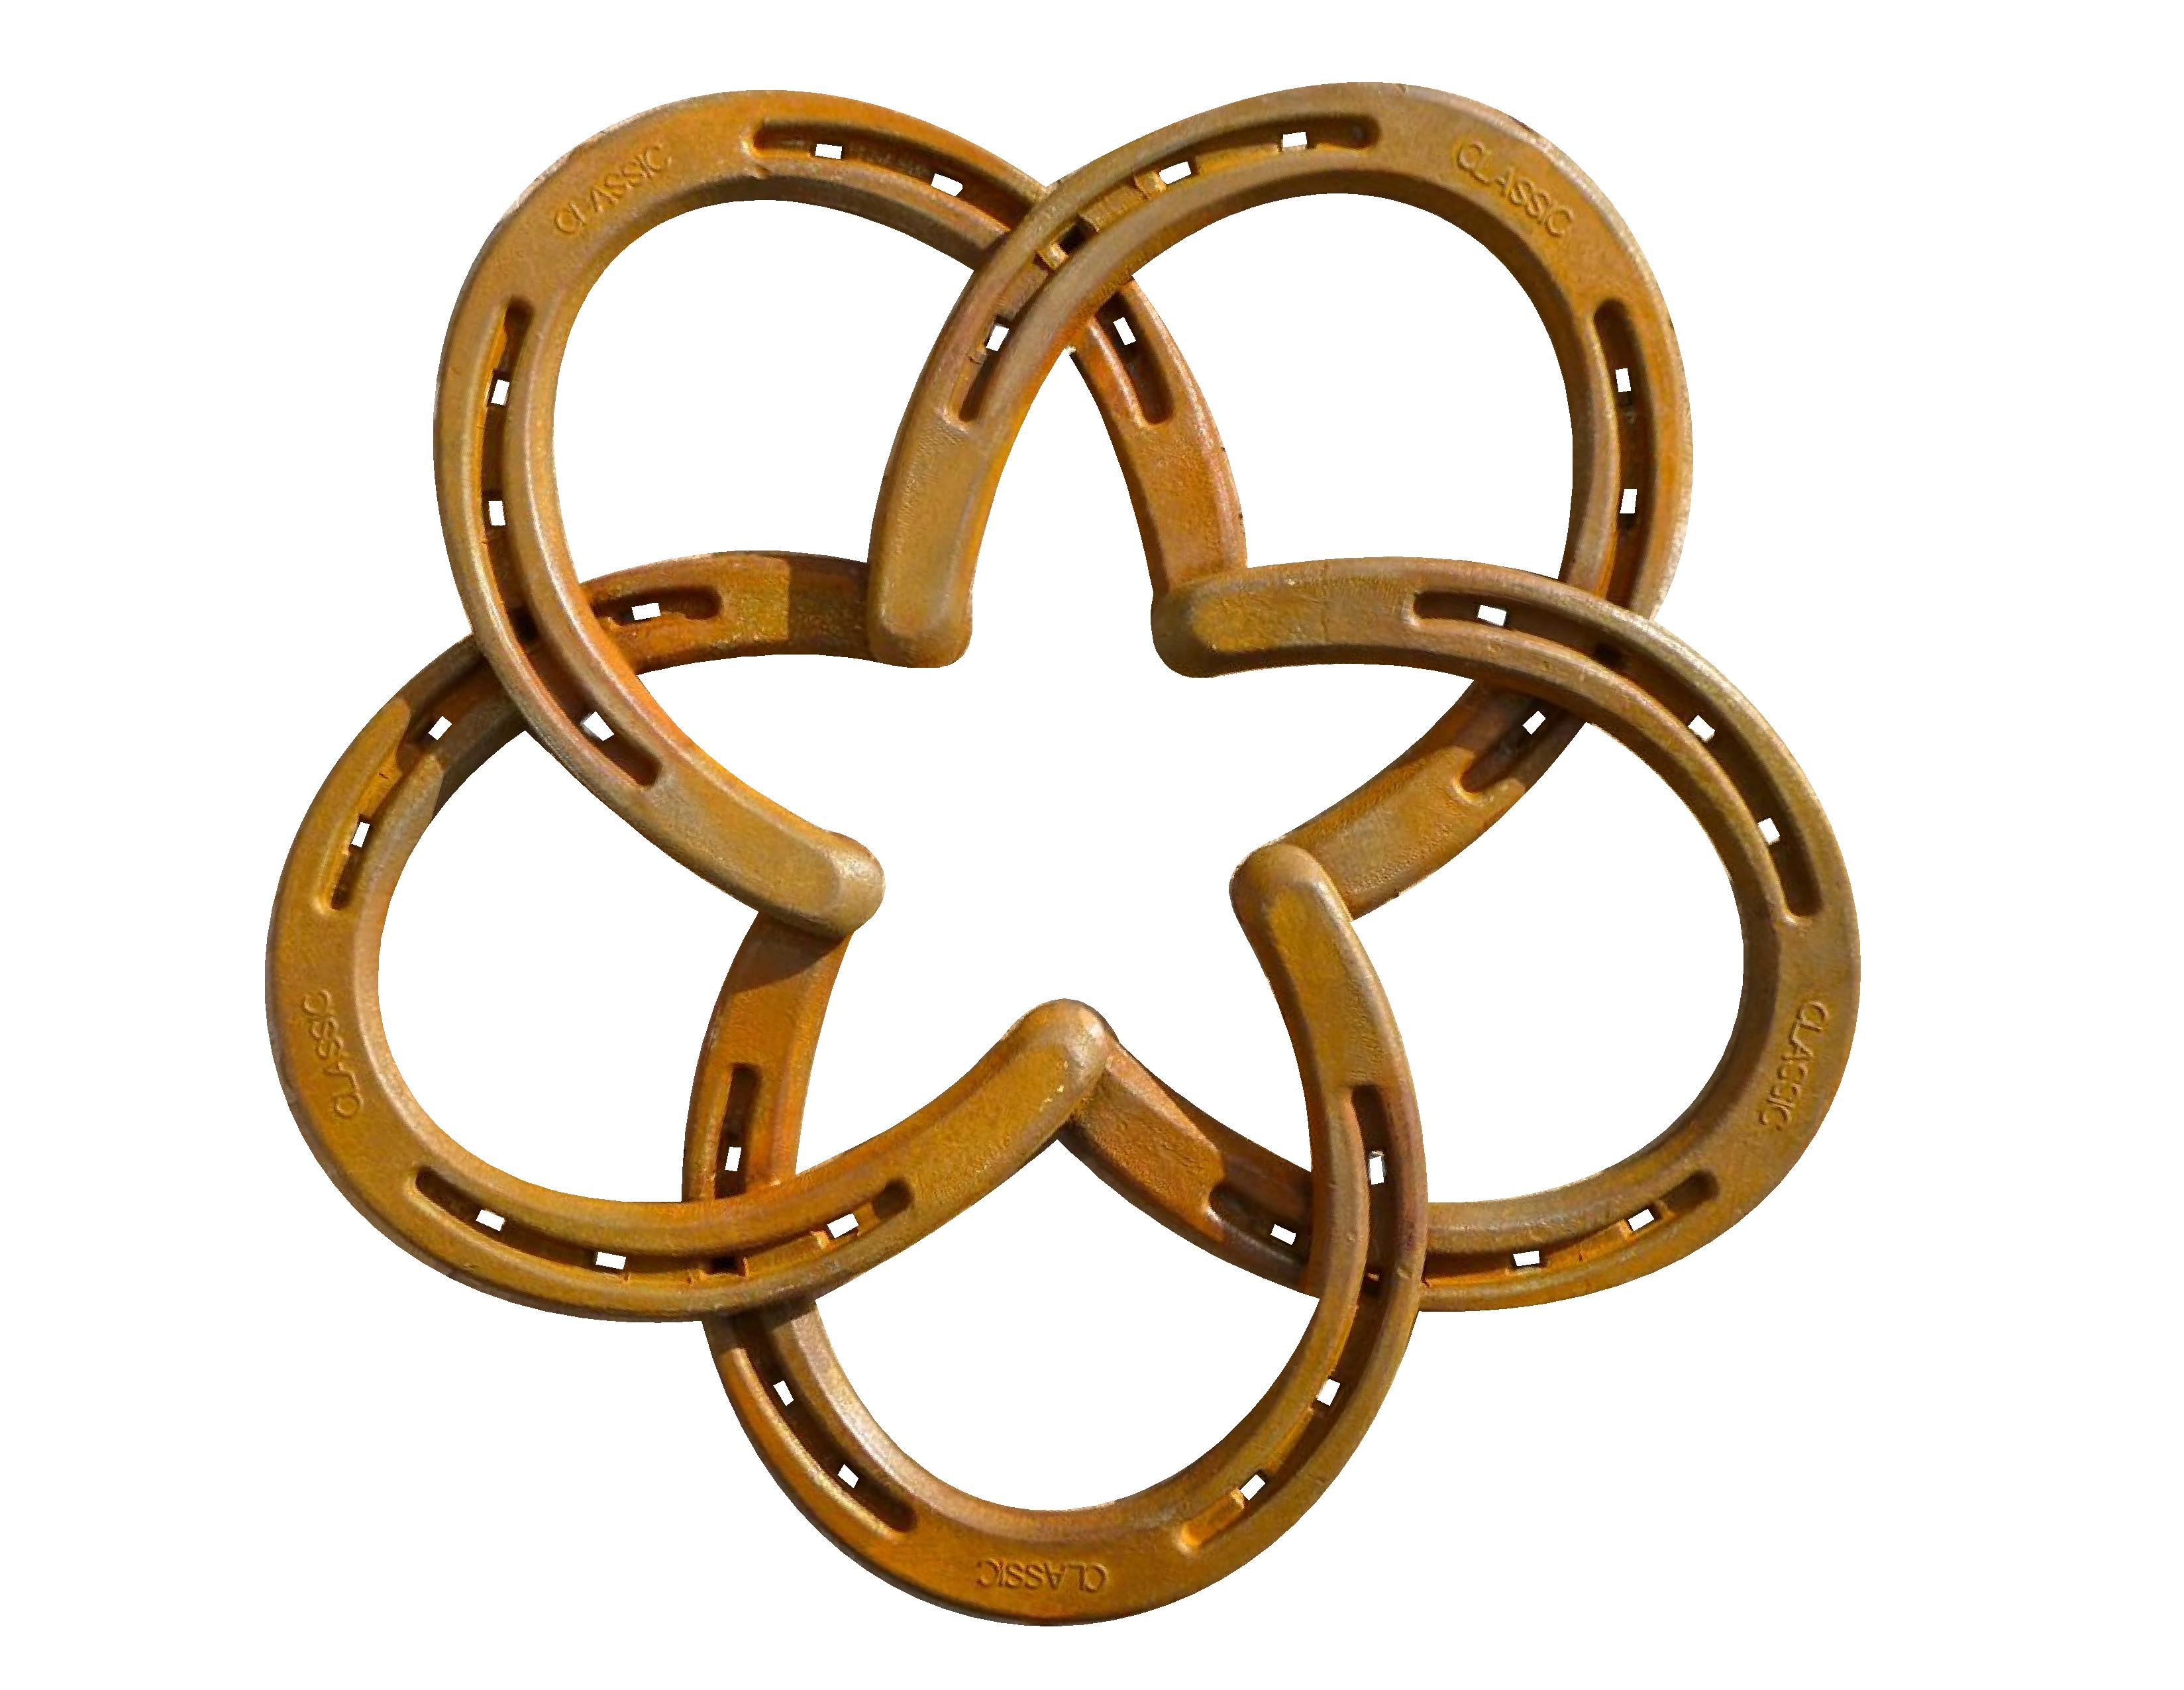 Outdoor Living Gifts Horseshoe Star Decorative Wall Mounted